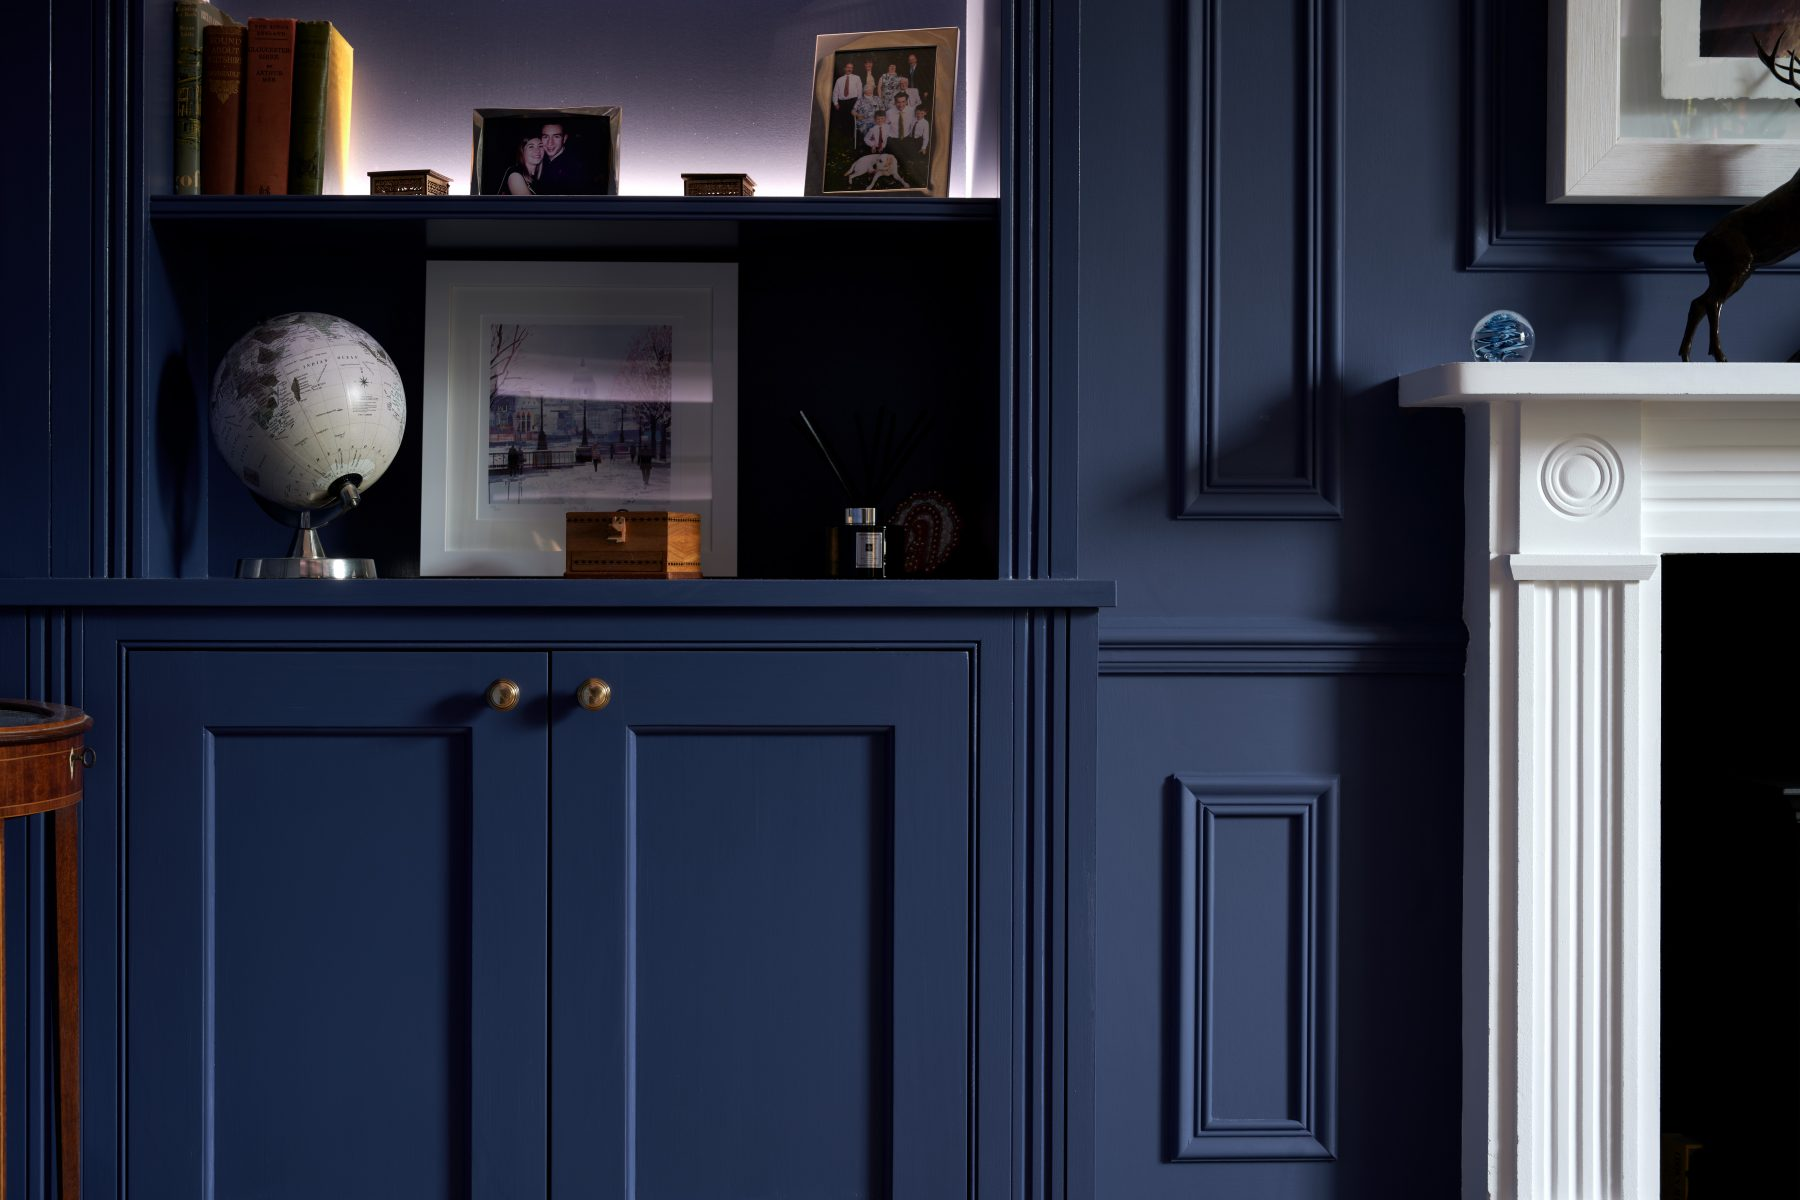 Alcove cabinetry with fluted column detailing